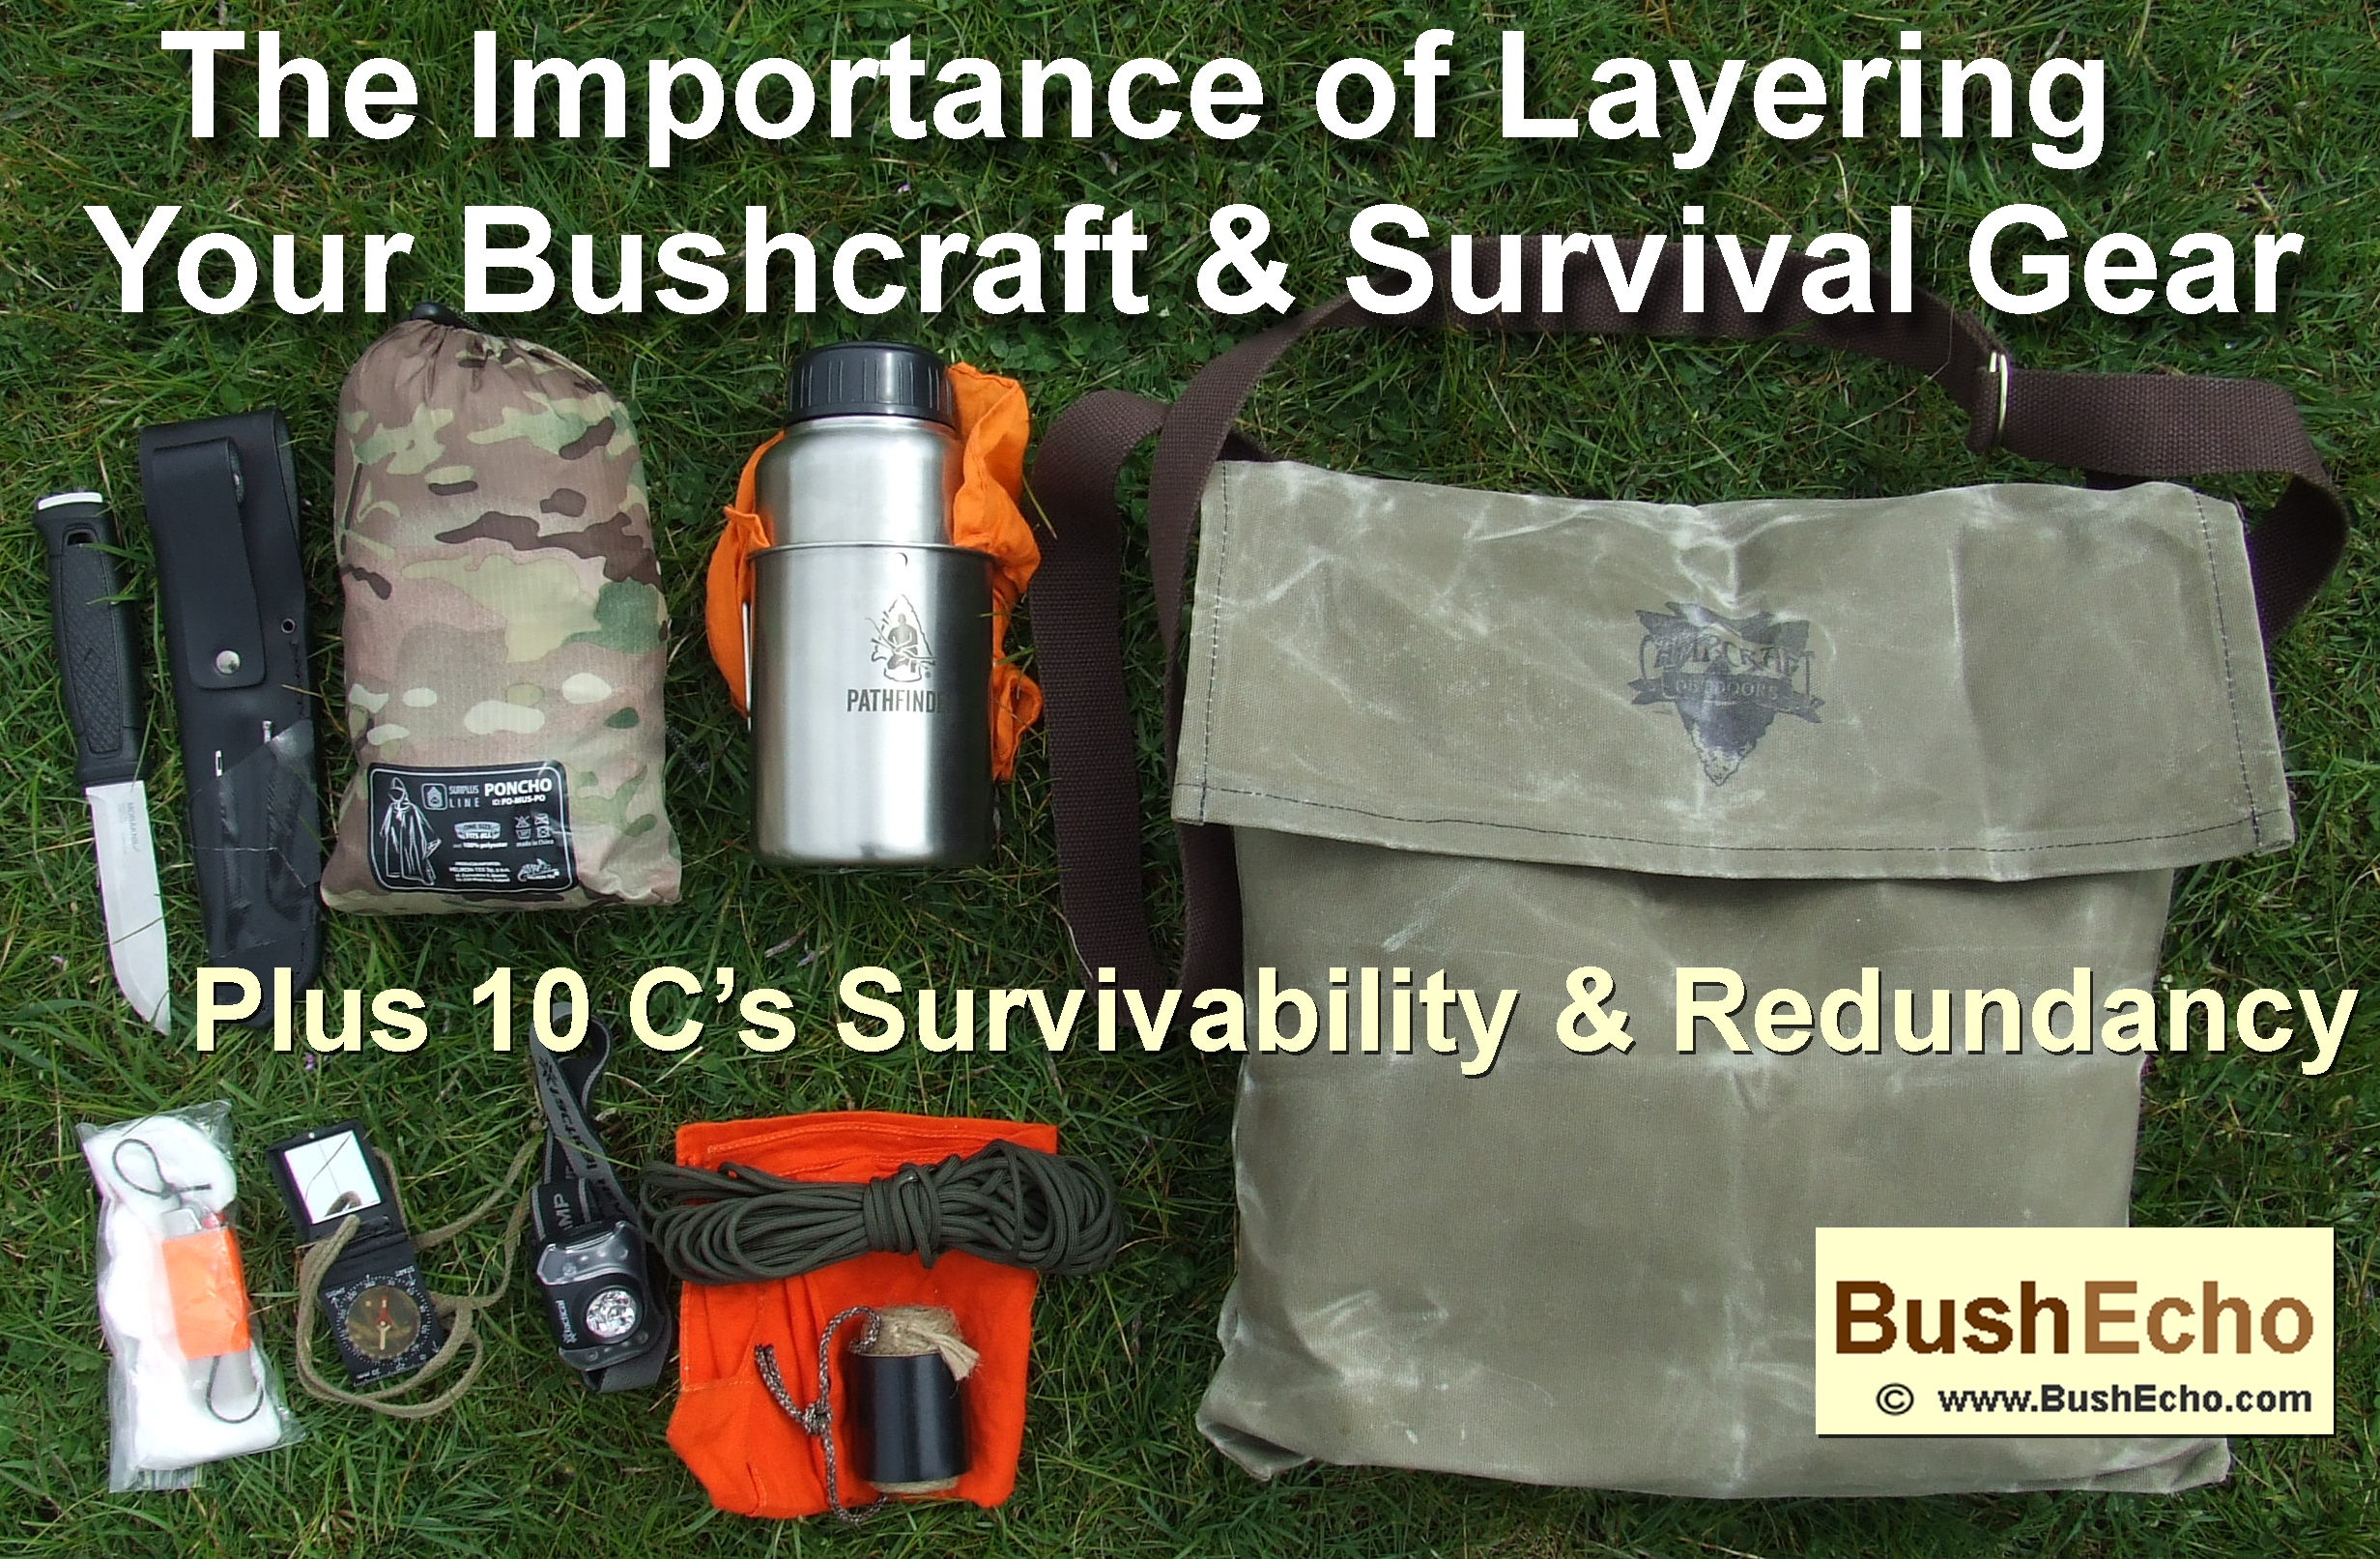 Bushcraft & Survival Kit Layers